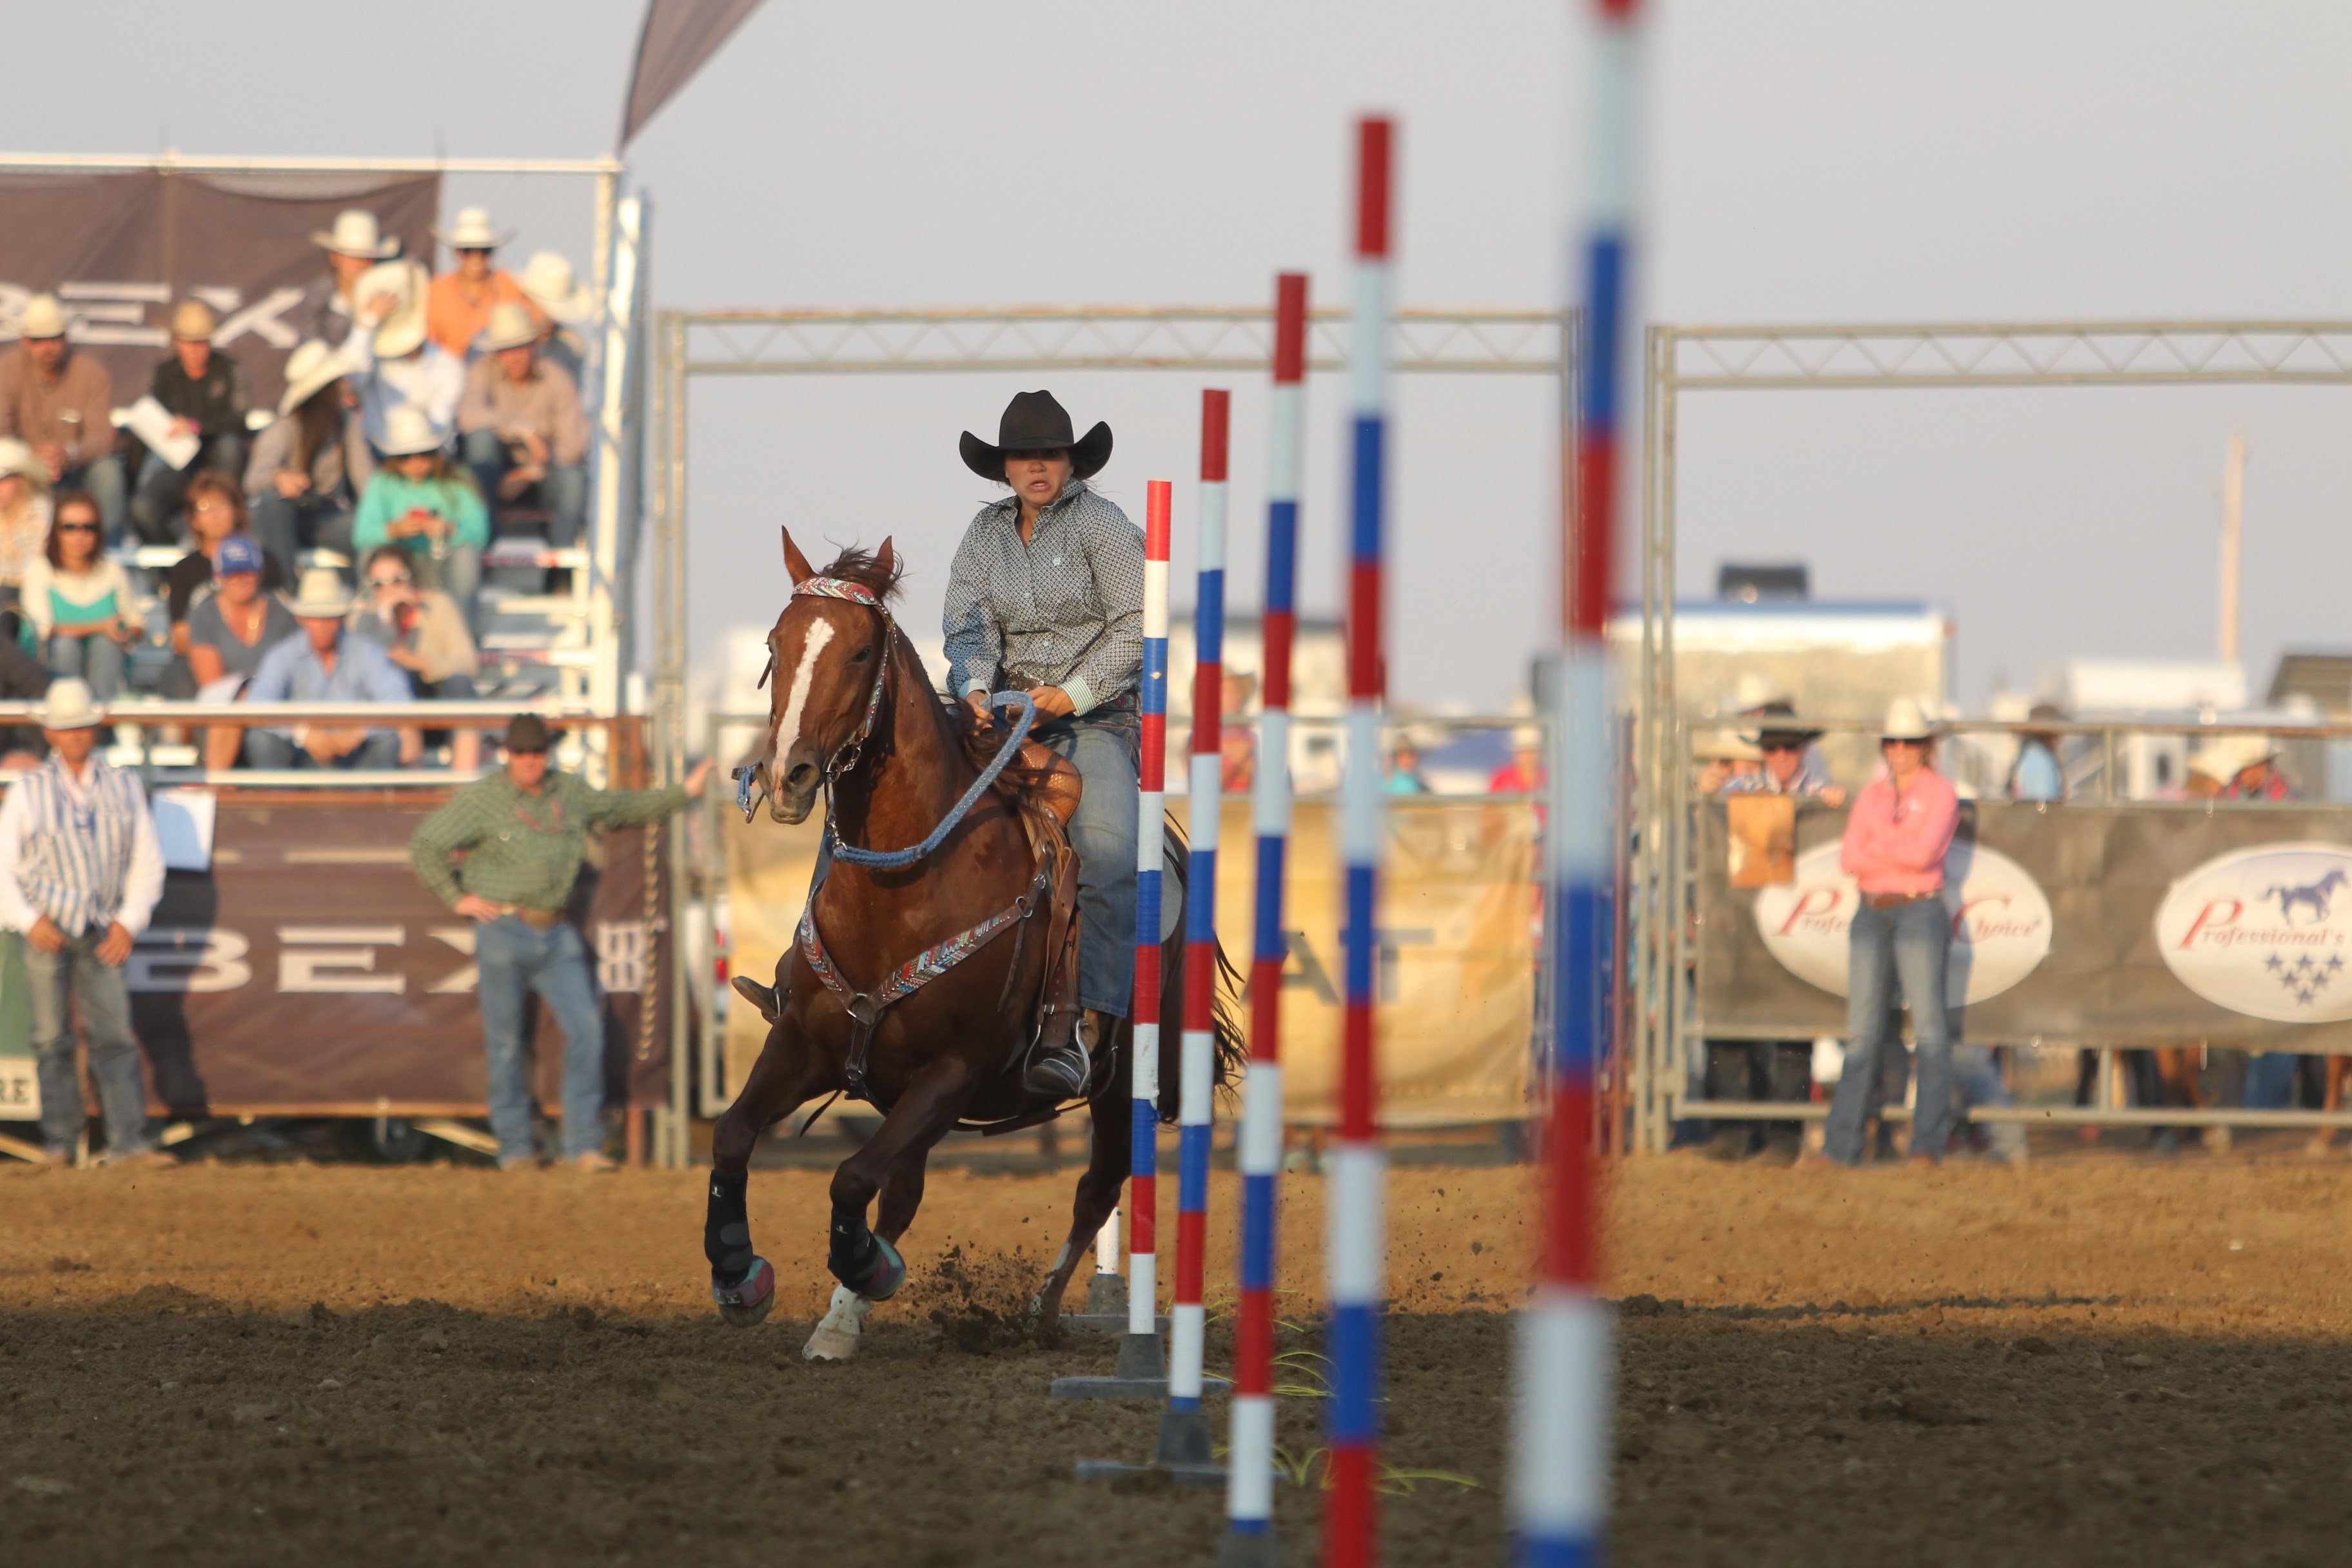 All-Around Cowgirl Shay Hough during her pole bending performance.